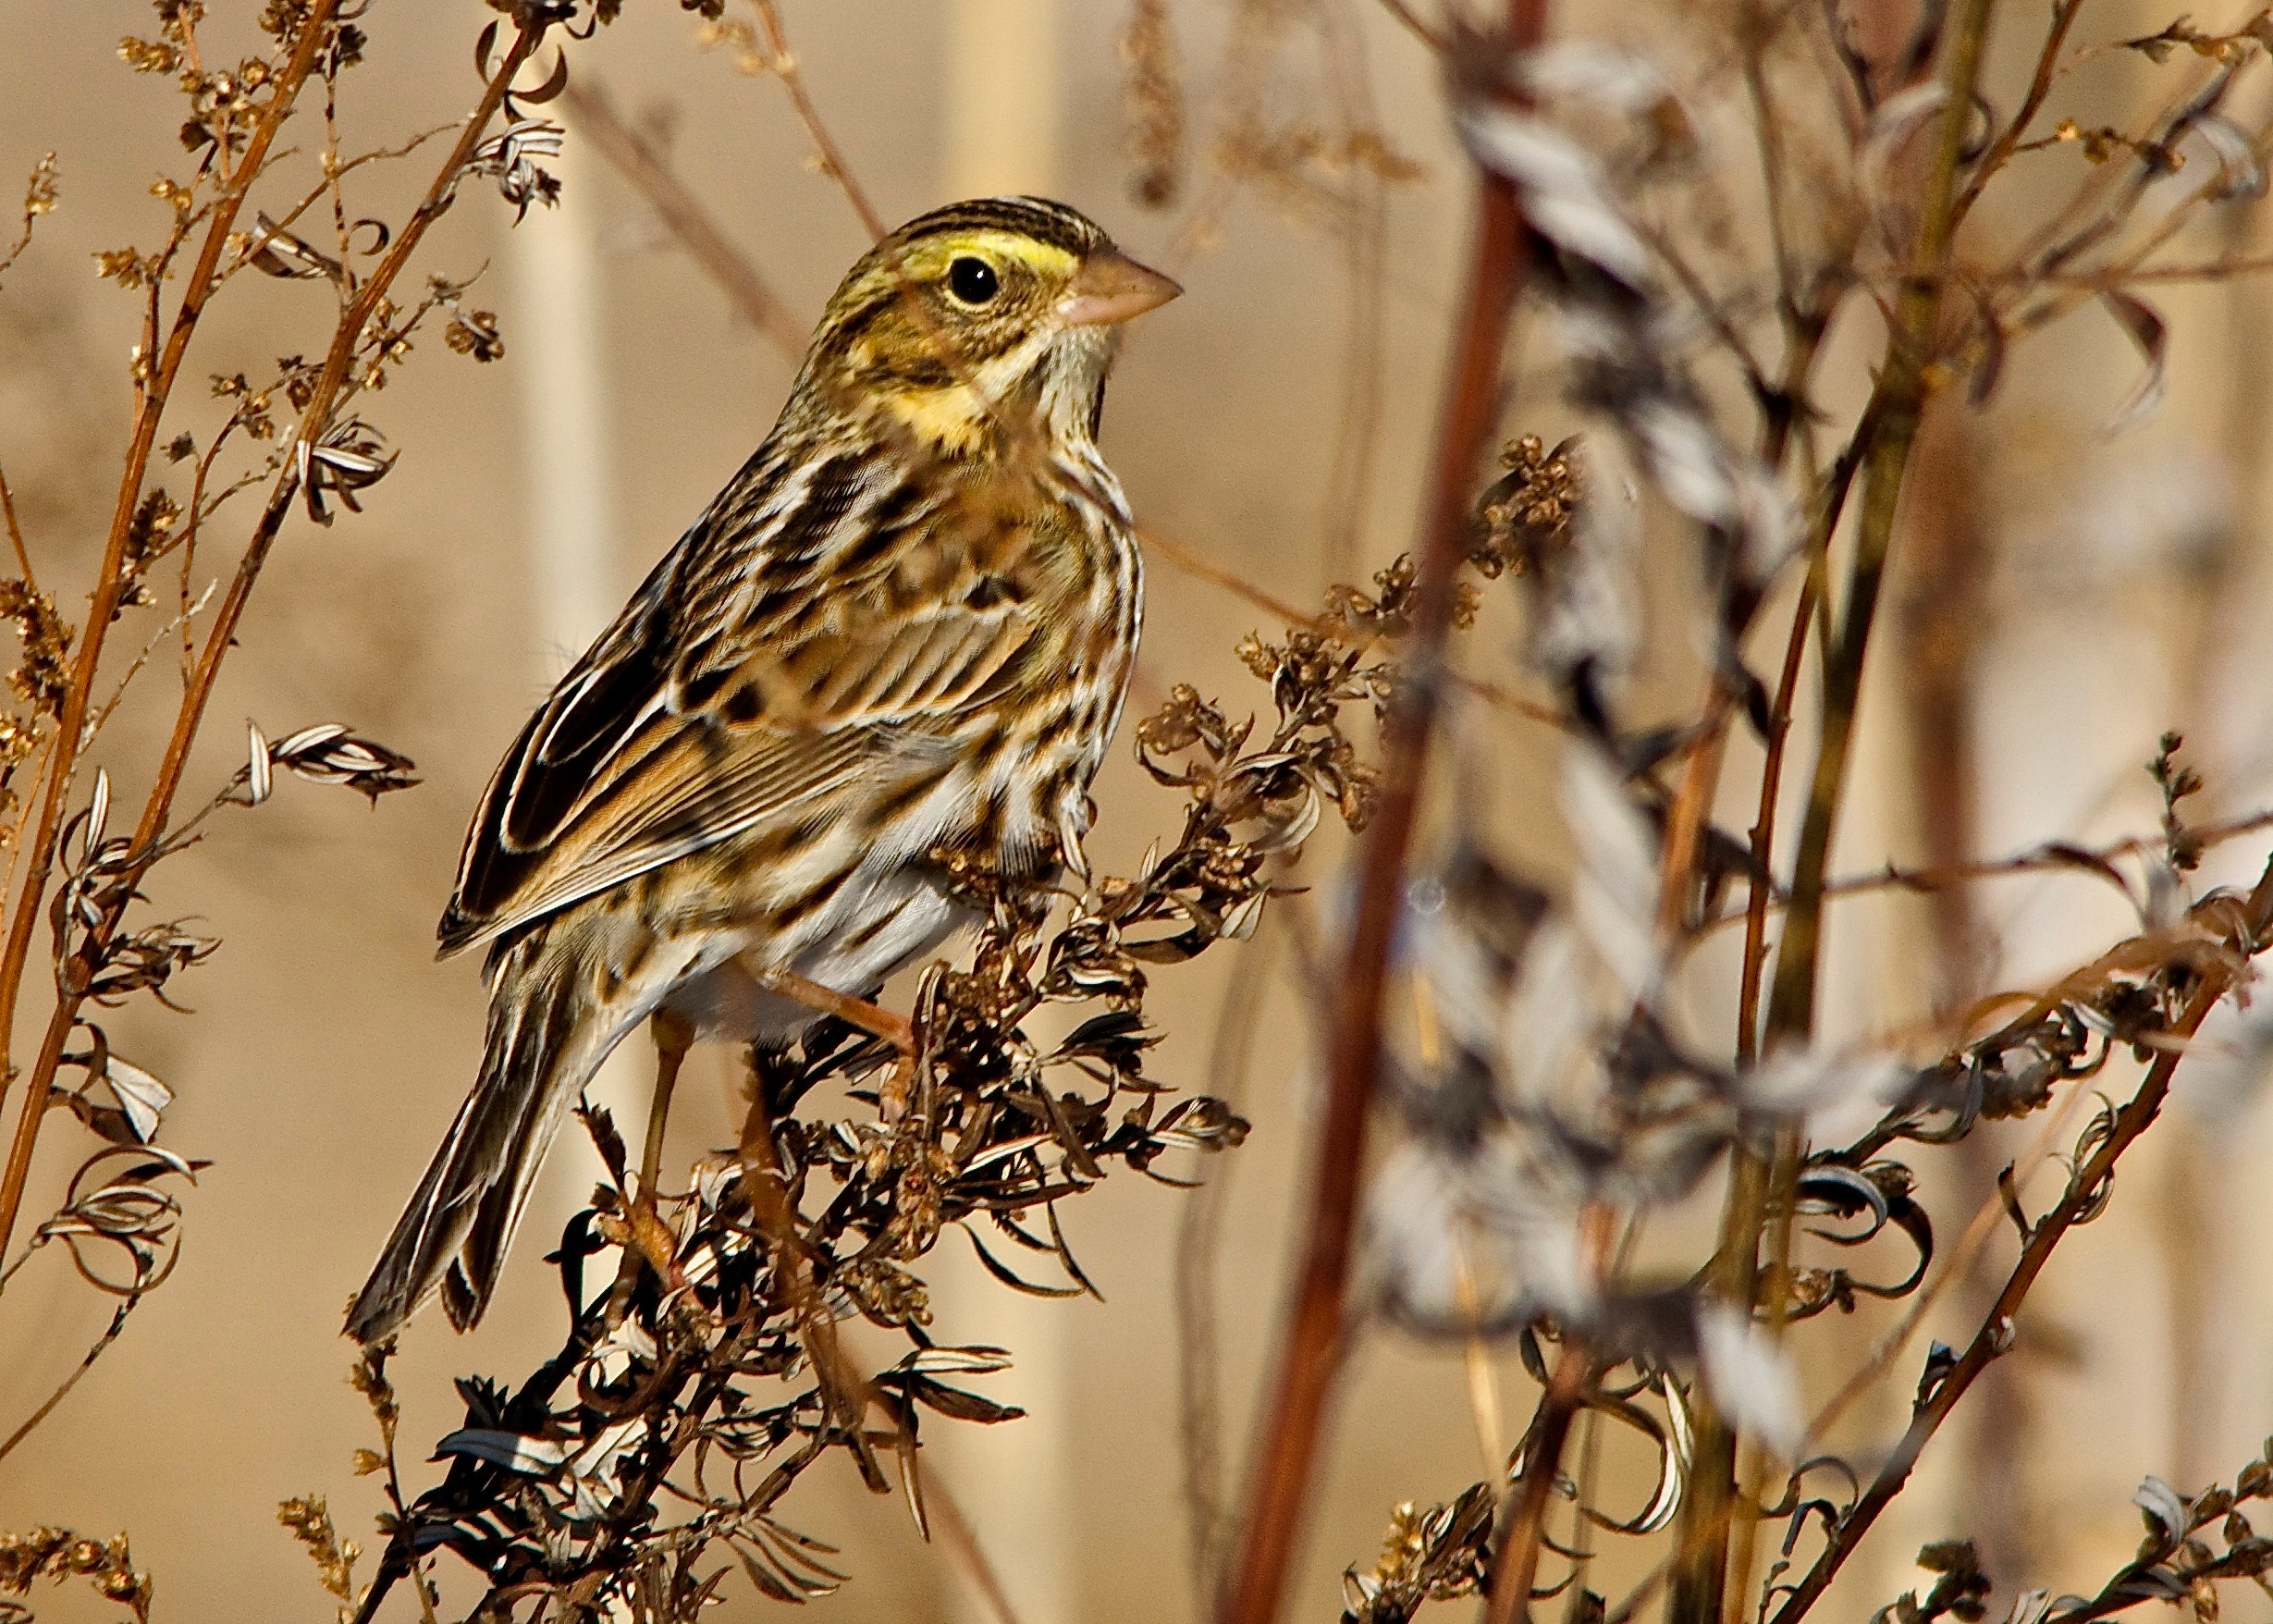 savannah-sparrow-fred-nisenholz